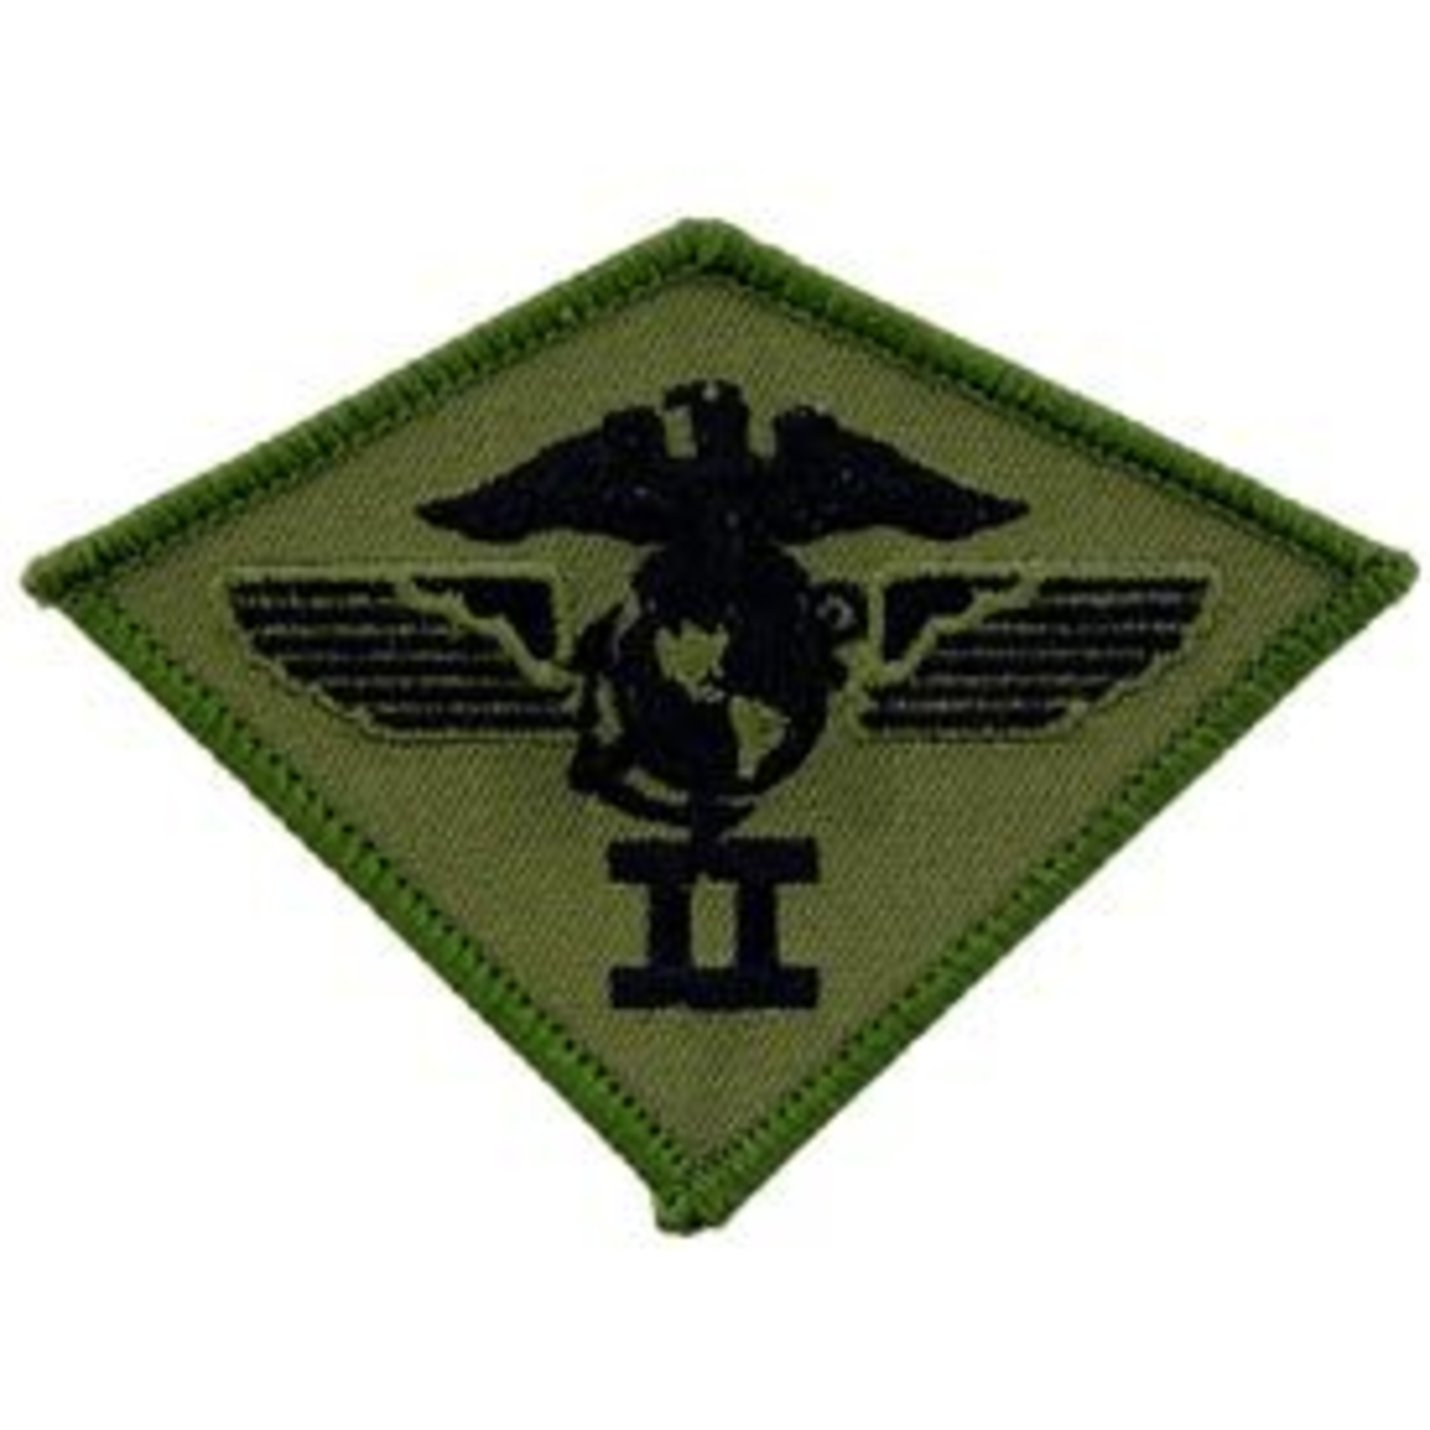 EagleEmblems pm0873 patch-usmc、02nd Airwing ( Subdued ) ( 3.75